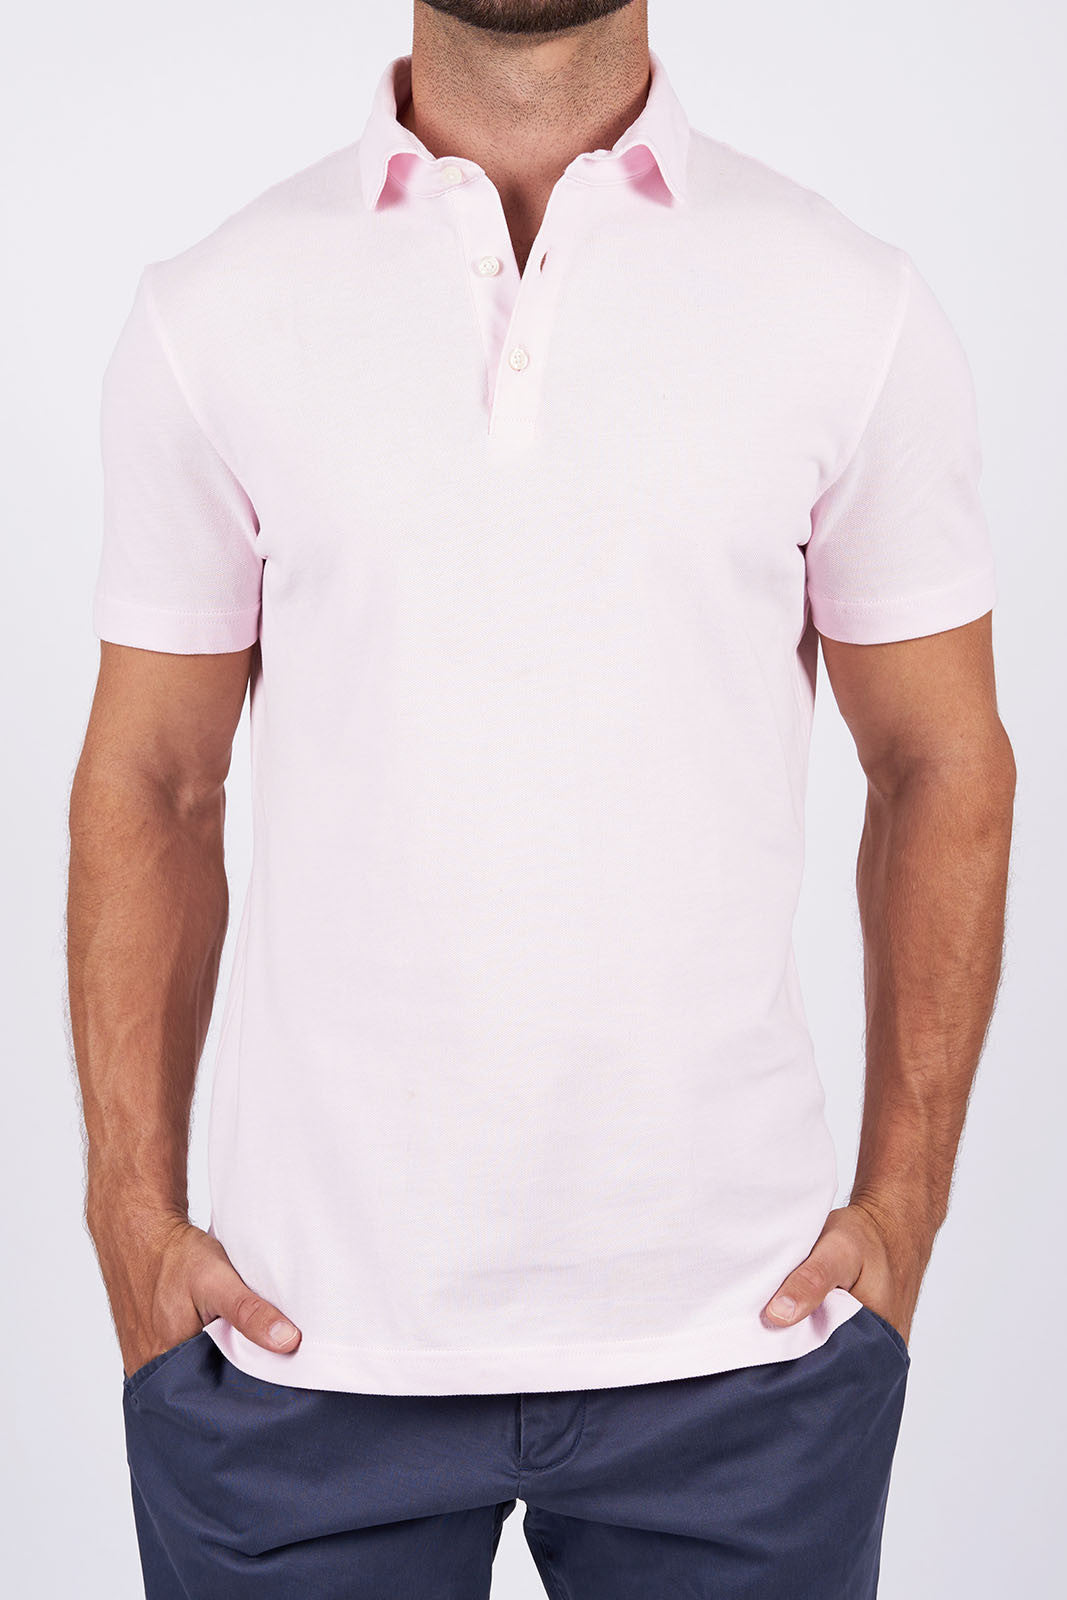 bb6894feaadb Limited Edition Stantt Button-Up Shirt. Light Pink Long-staple Cotton Polo.  Zoom